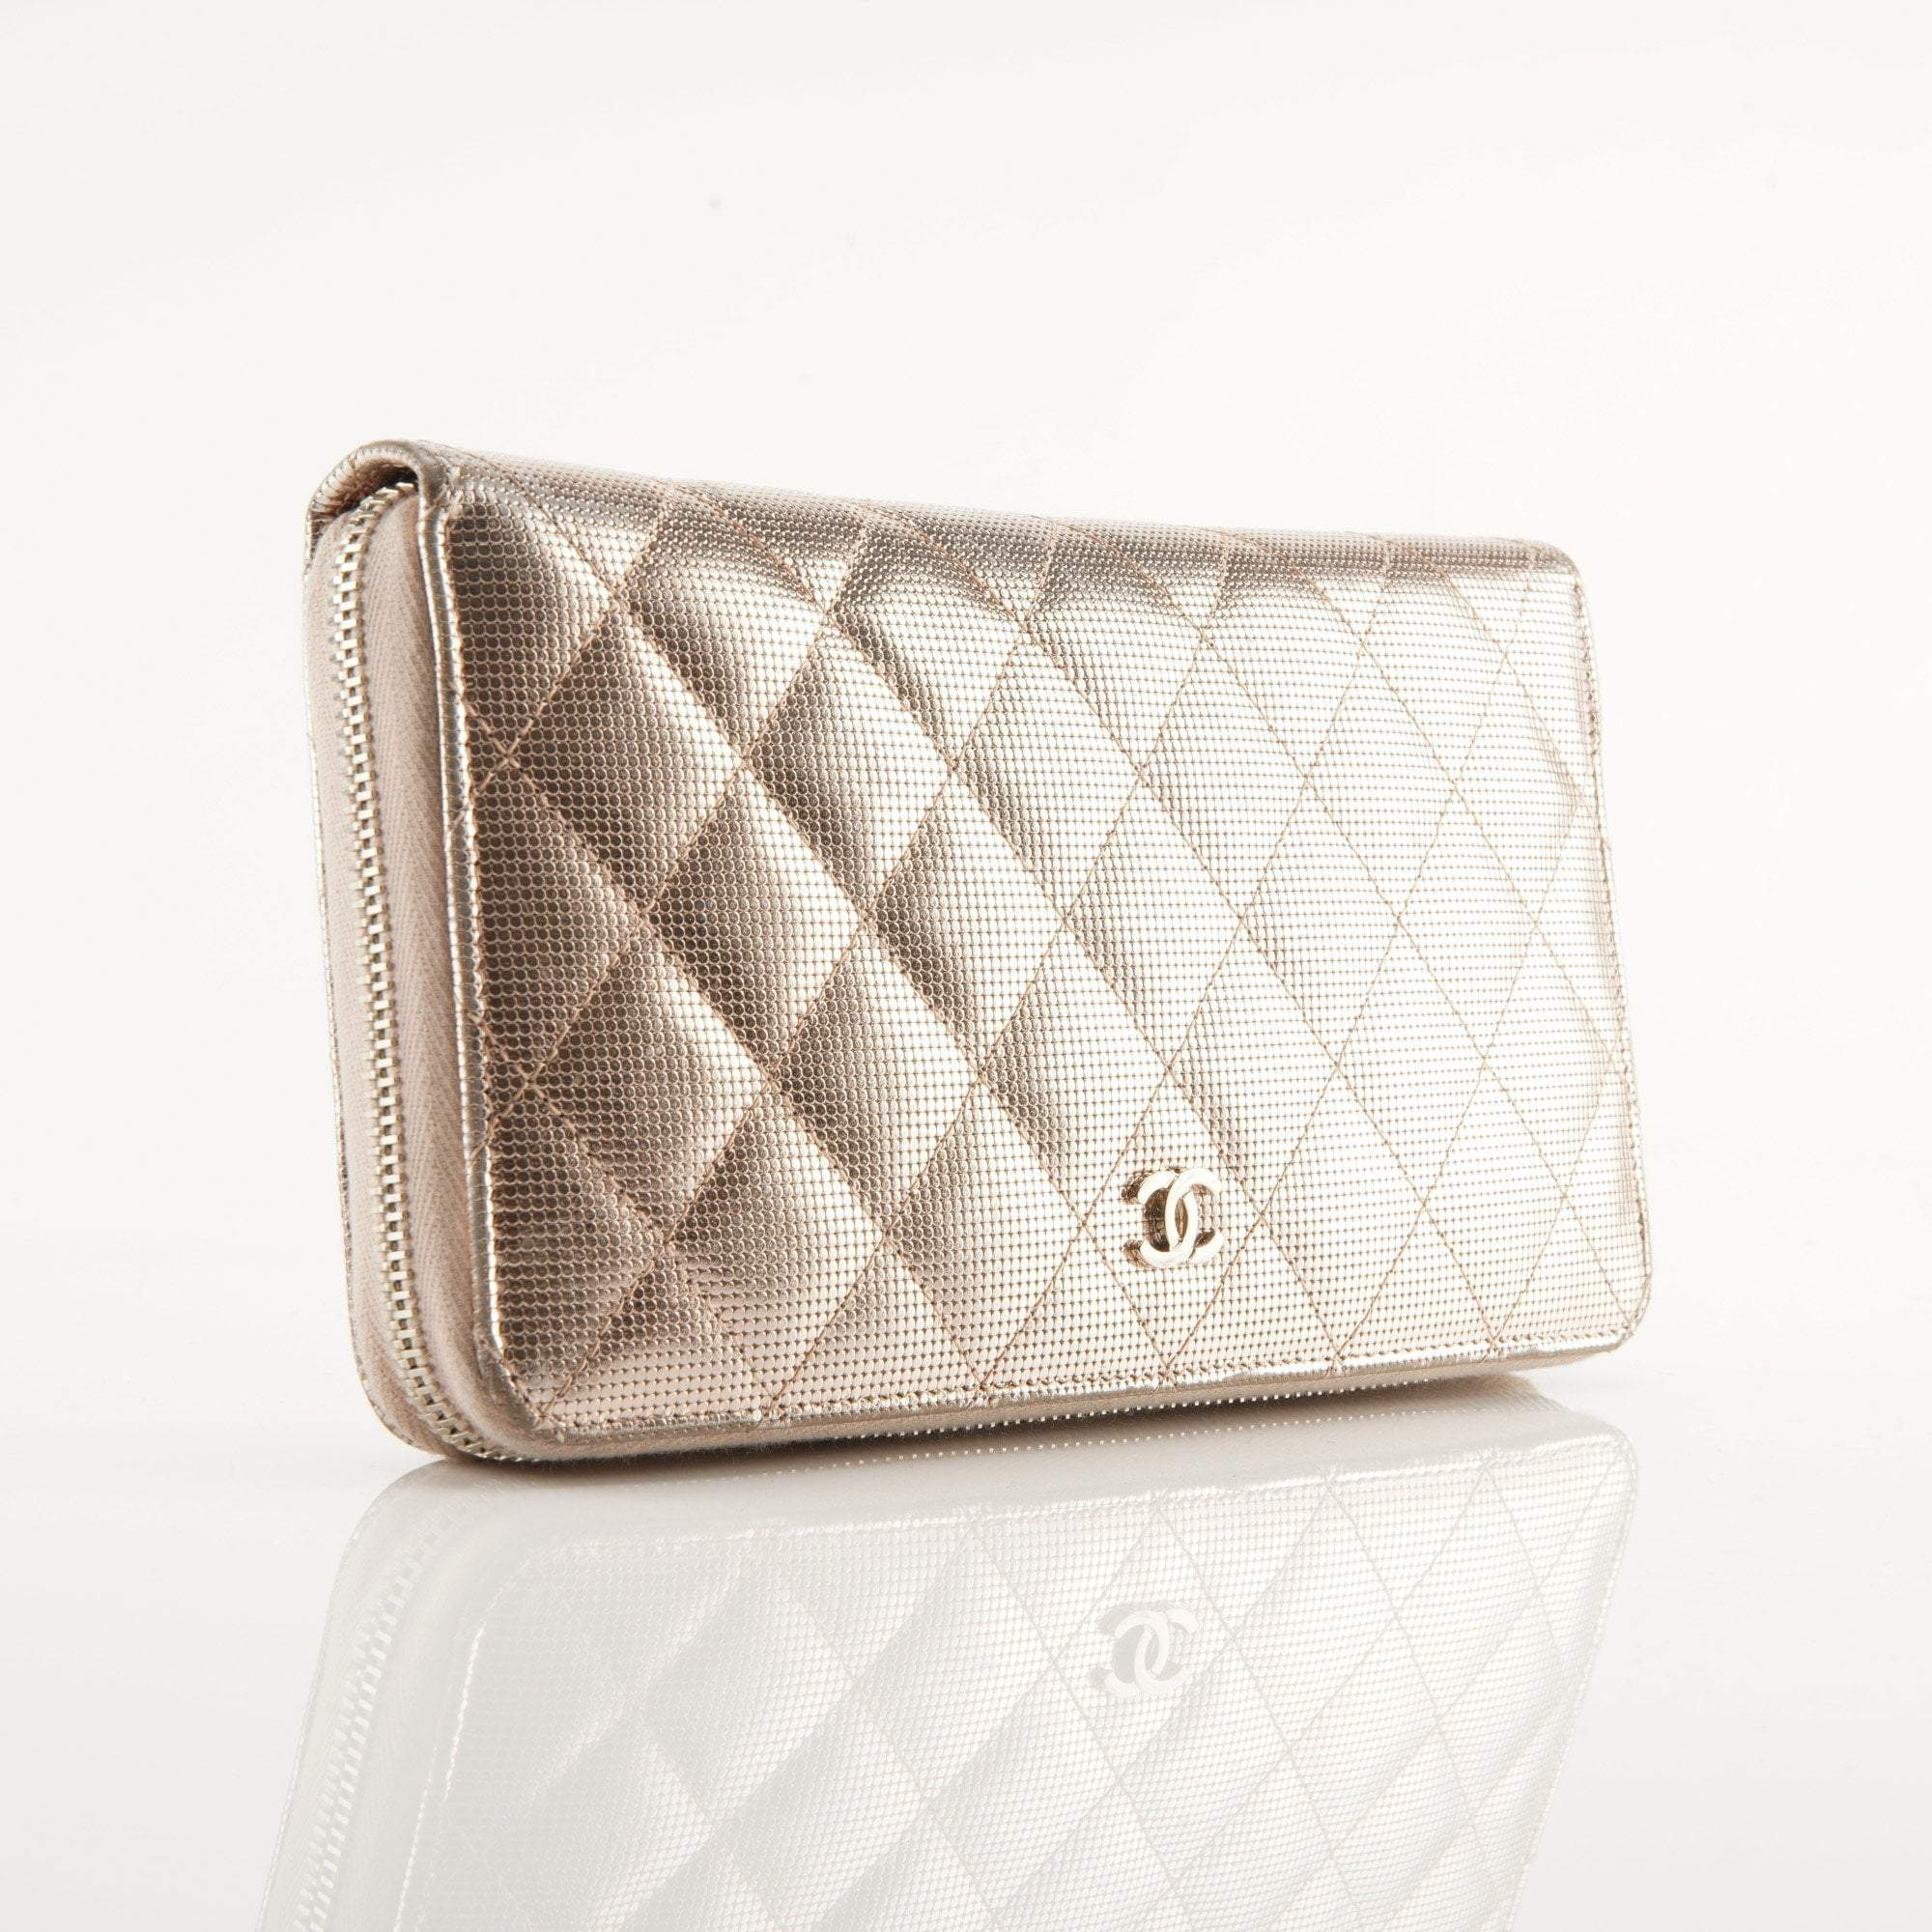 Chanel Rosegold Quilted Caviar Leather Large Zippy Wallet